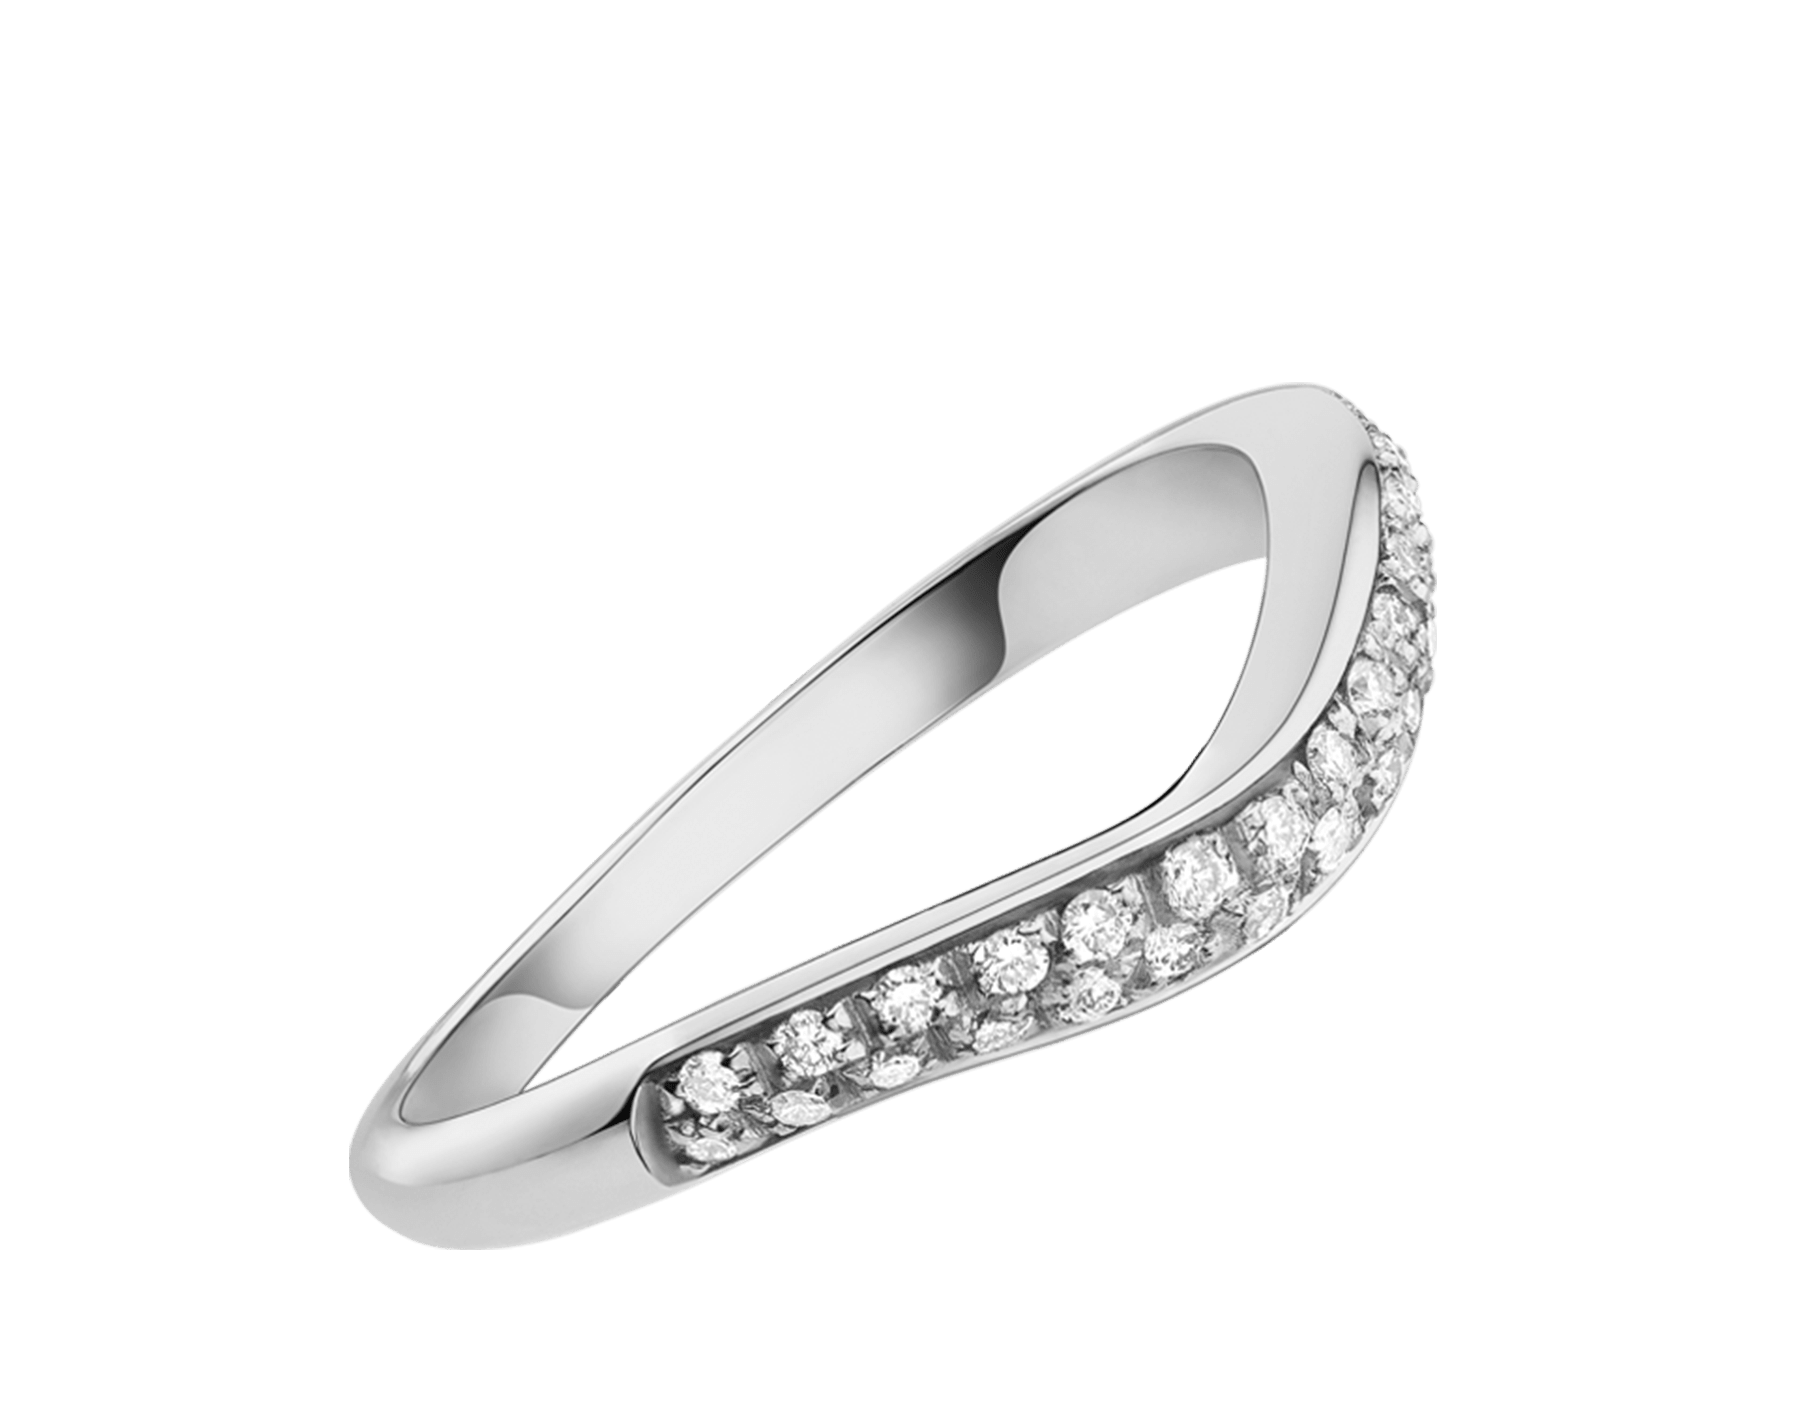 Corona platinum wedding ring with pavé diamonds with matching Corona 0.40 - 1.50 ct engagement rings AN856080 image 1